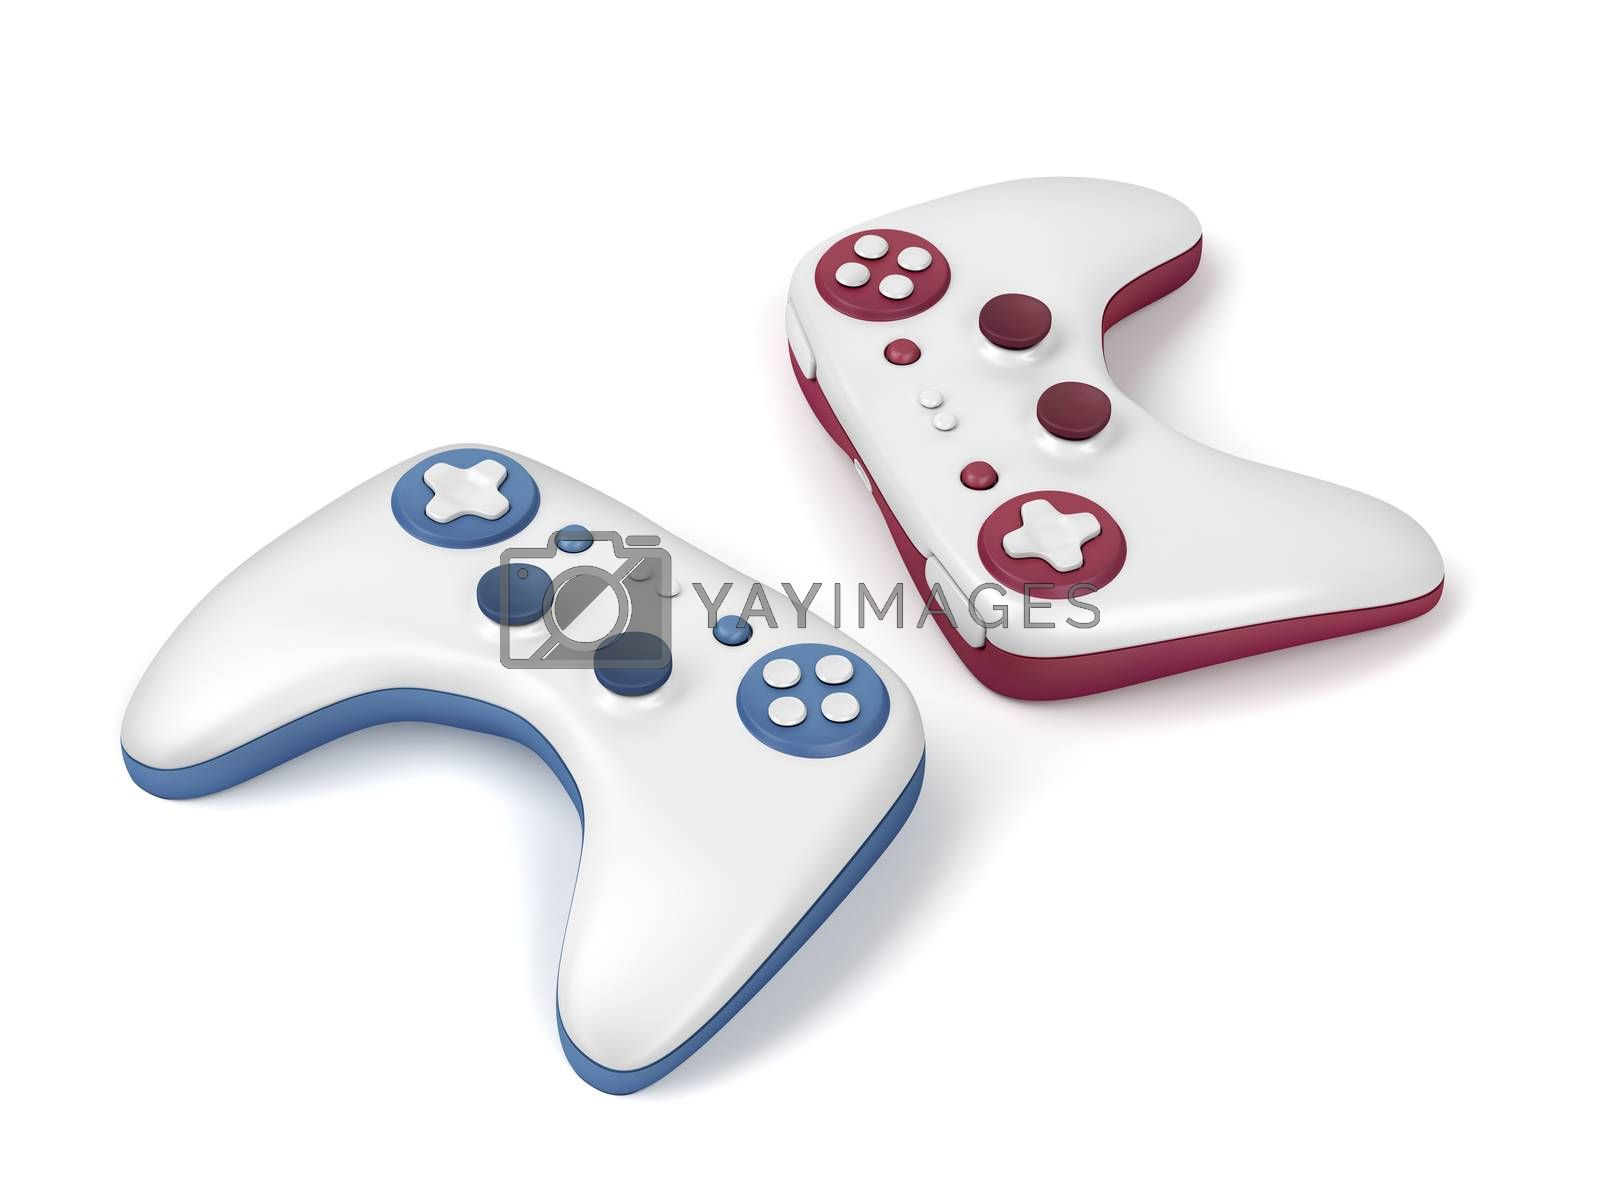 Pair of wireless gaming controllers on white background